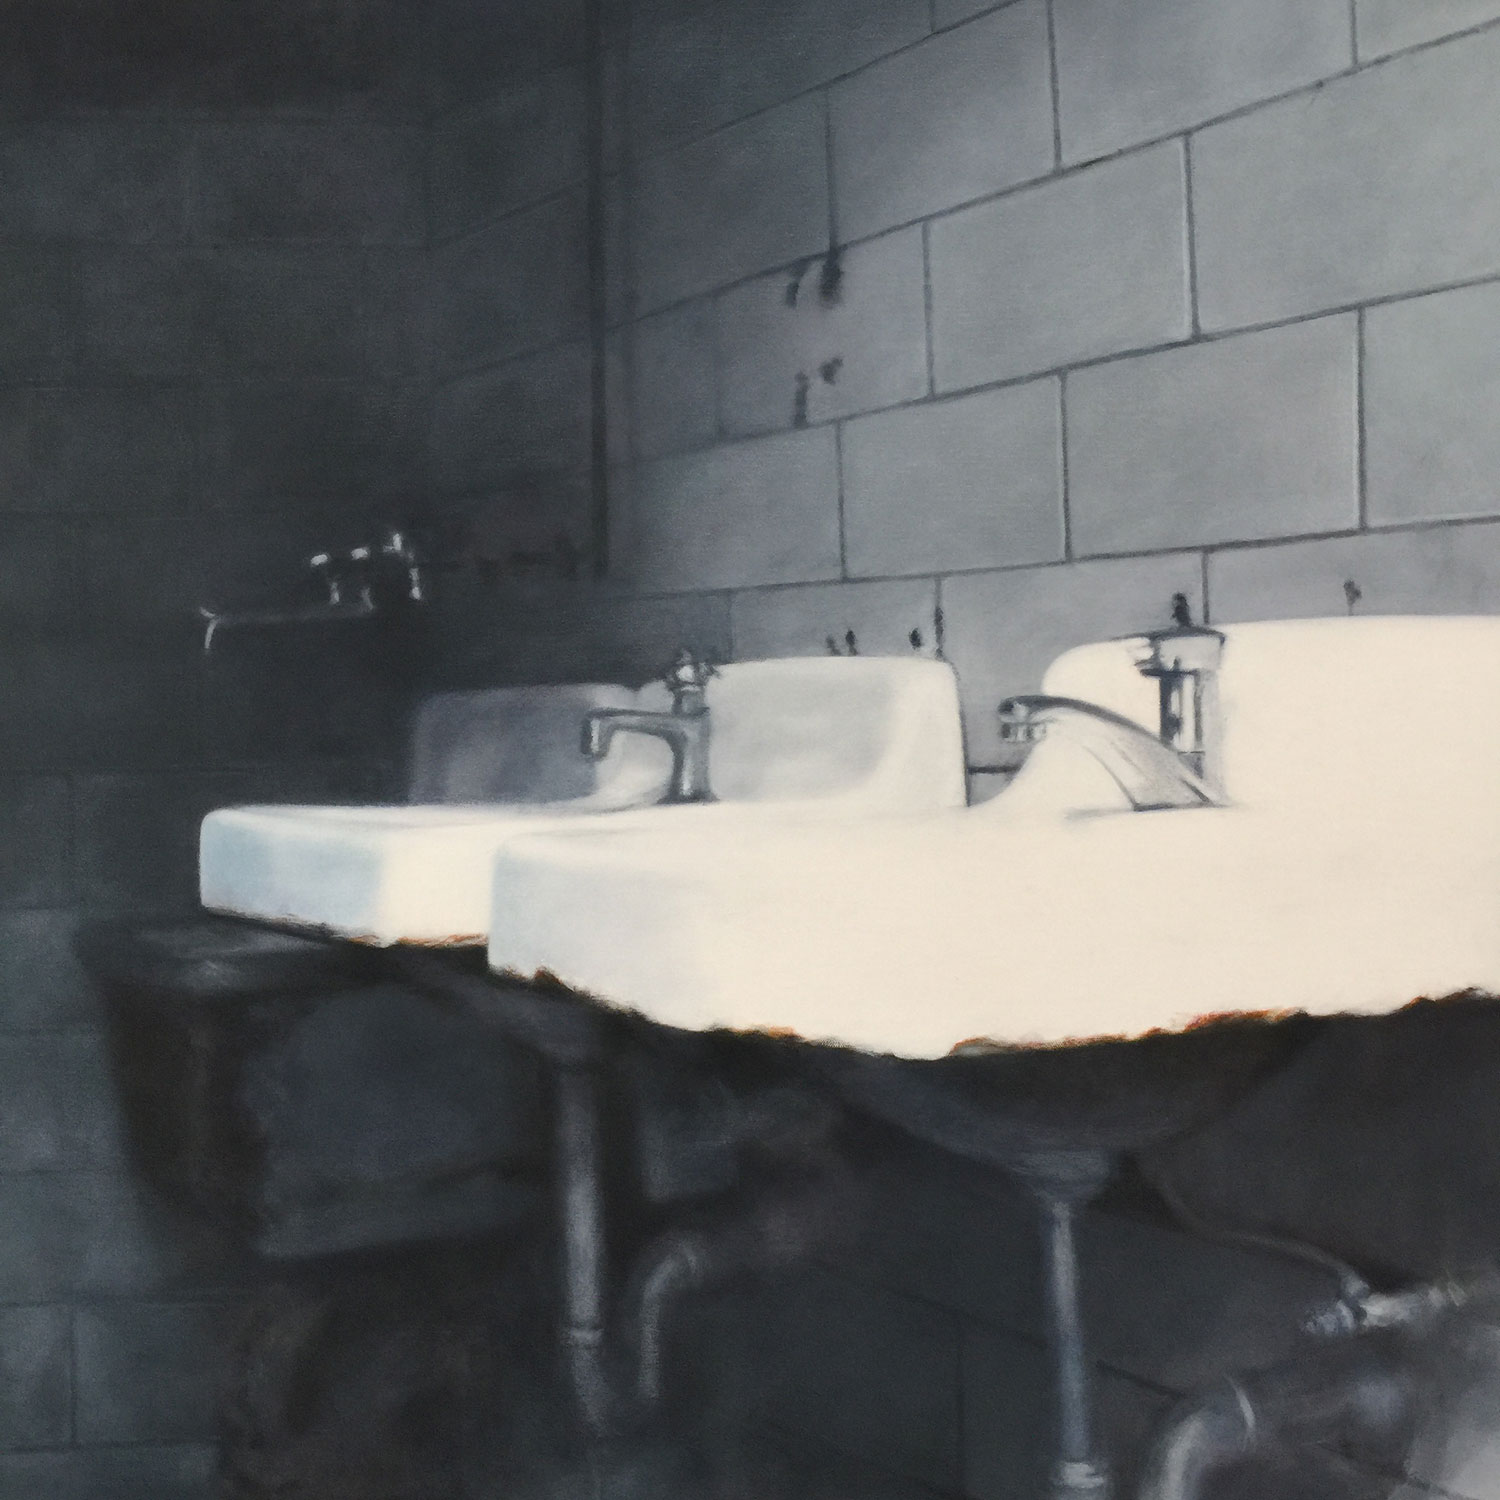 """The Sinks, 2018 Oil on canvas 32x32"""""""